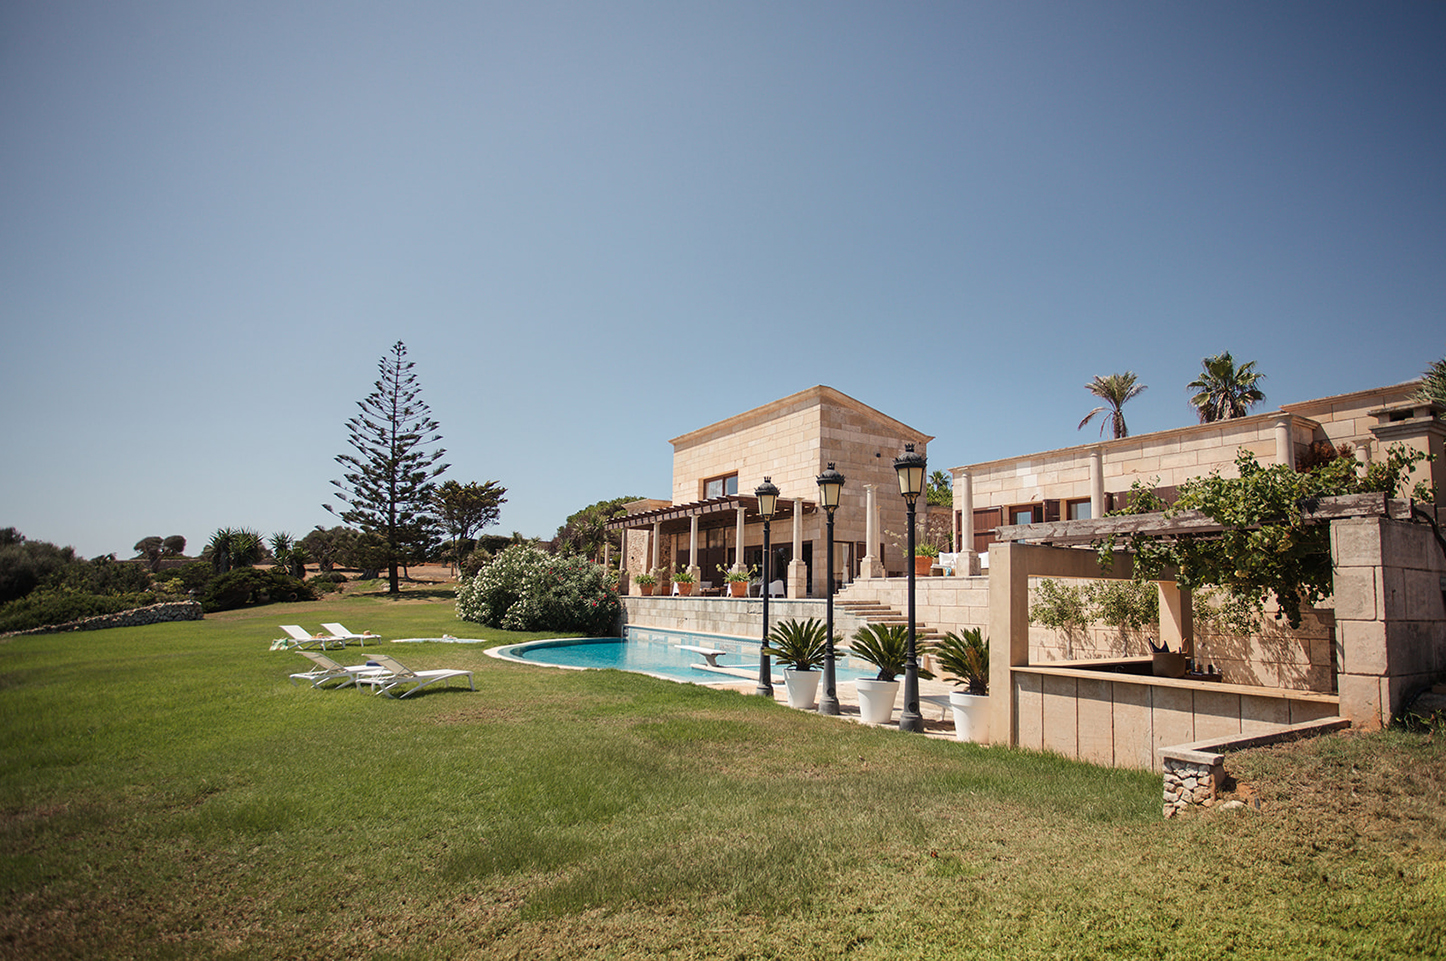 Exclusive and secluded cliff top villa in menorca with staff and wall to wall sea views